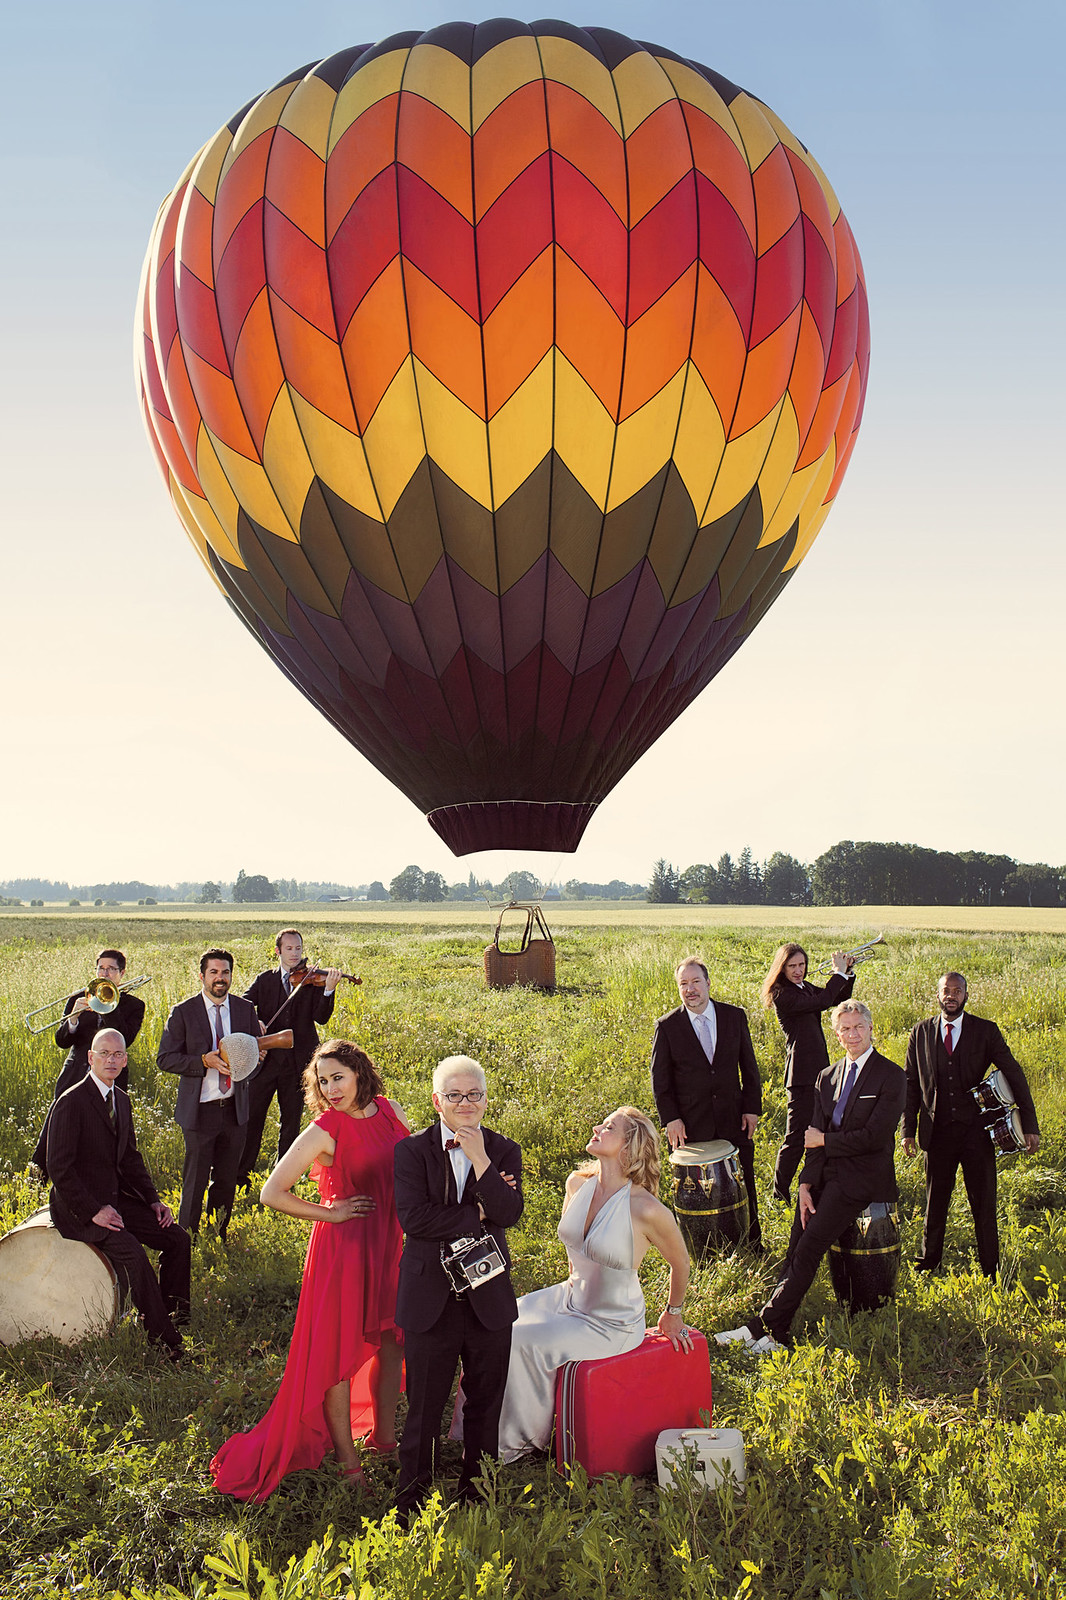 Pink Martini 2 - with China and Stormclass=